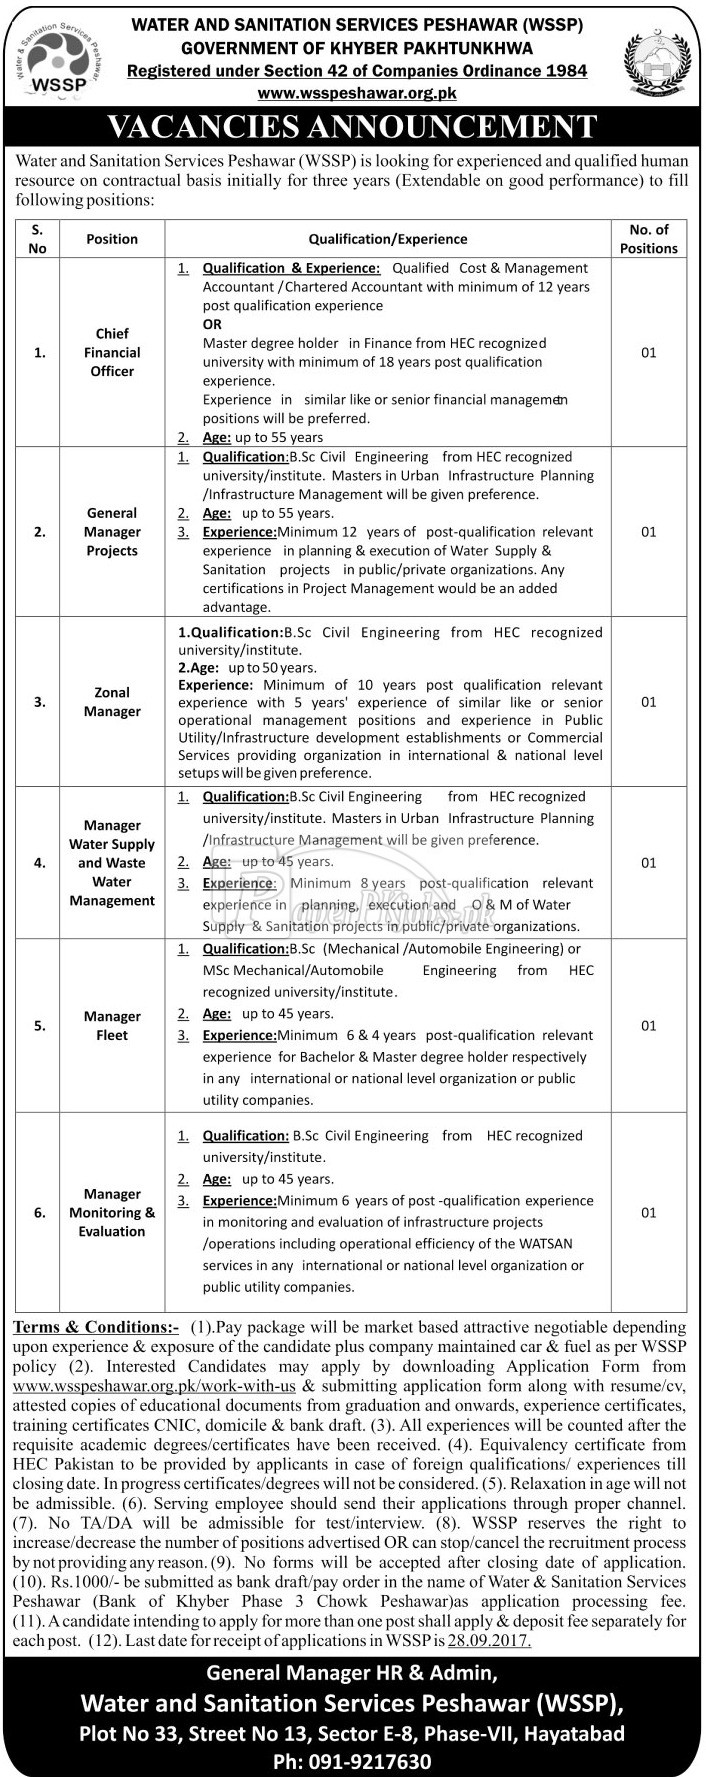 Water & Sanitation Services Peshawar WSSP Jobs 2017